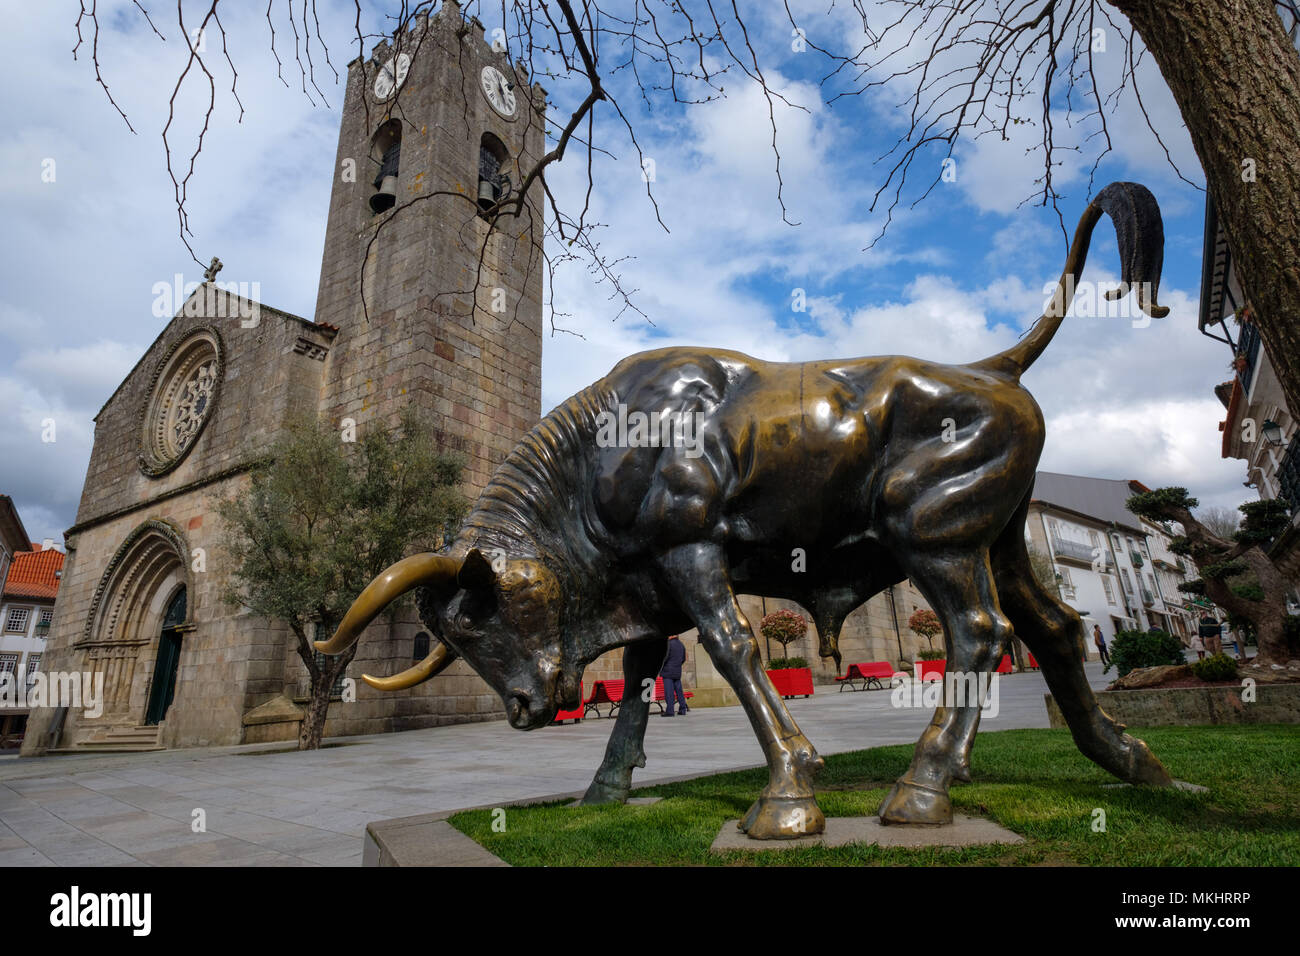 Bronze statue of a bull used during the Vaca das Cordas traditional festivities in front of the Igreja Matriz church in Ponte de Lima, Portugal - Stock Image